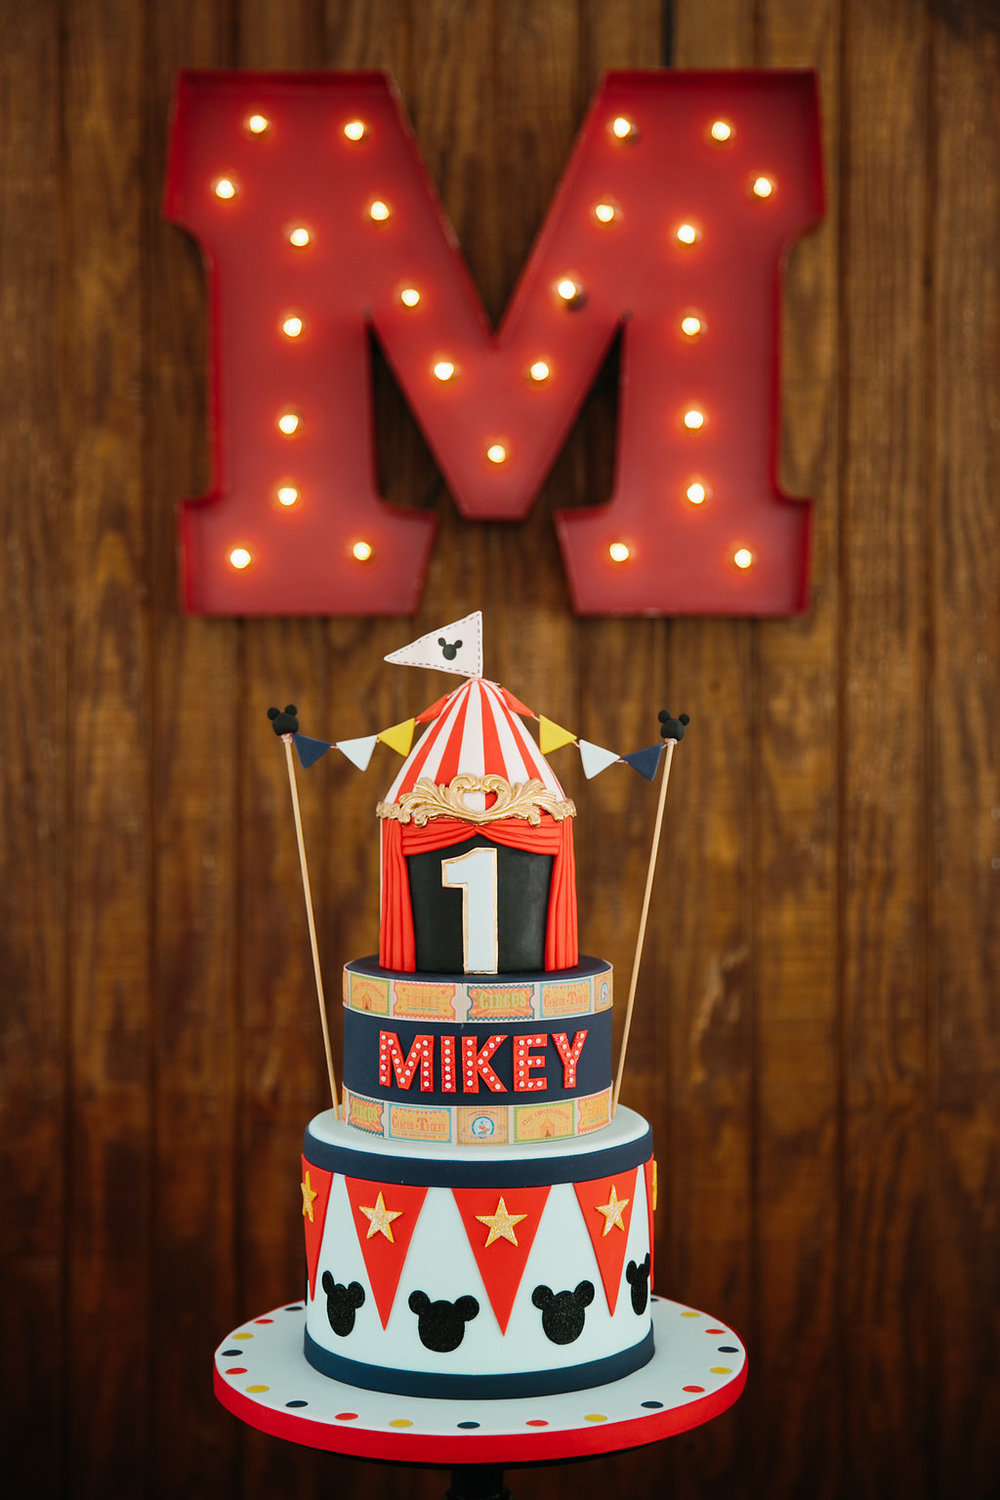 Mikey-1st-Bday-18.jpg